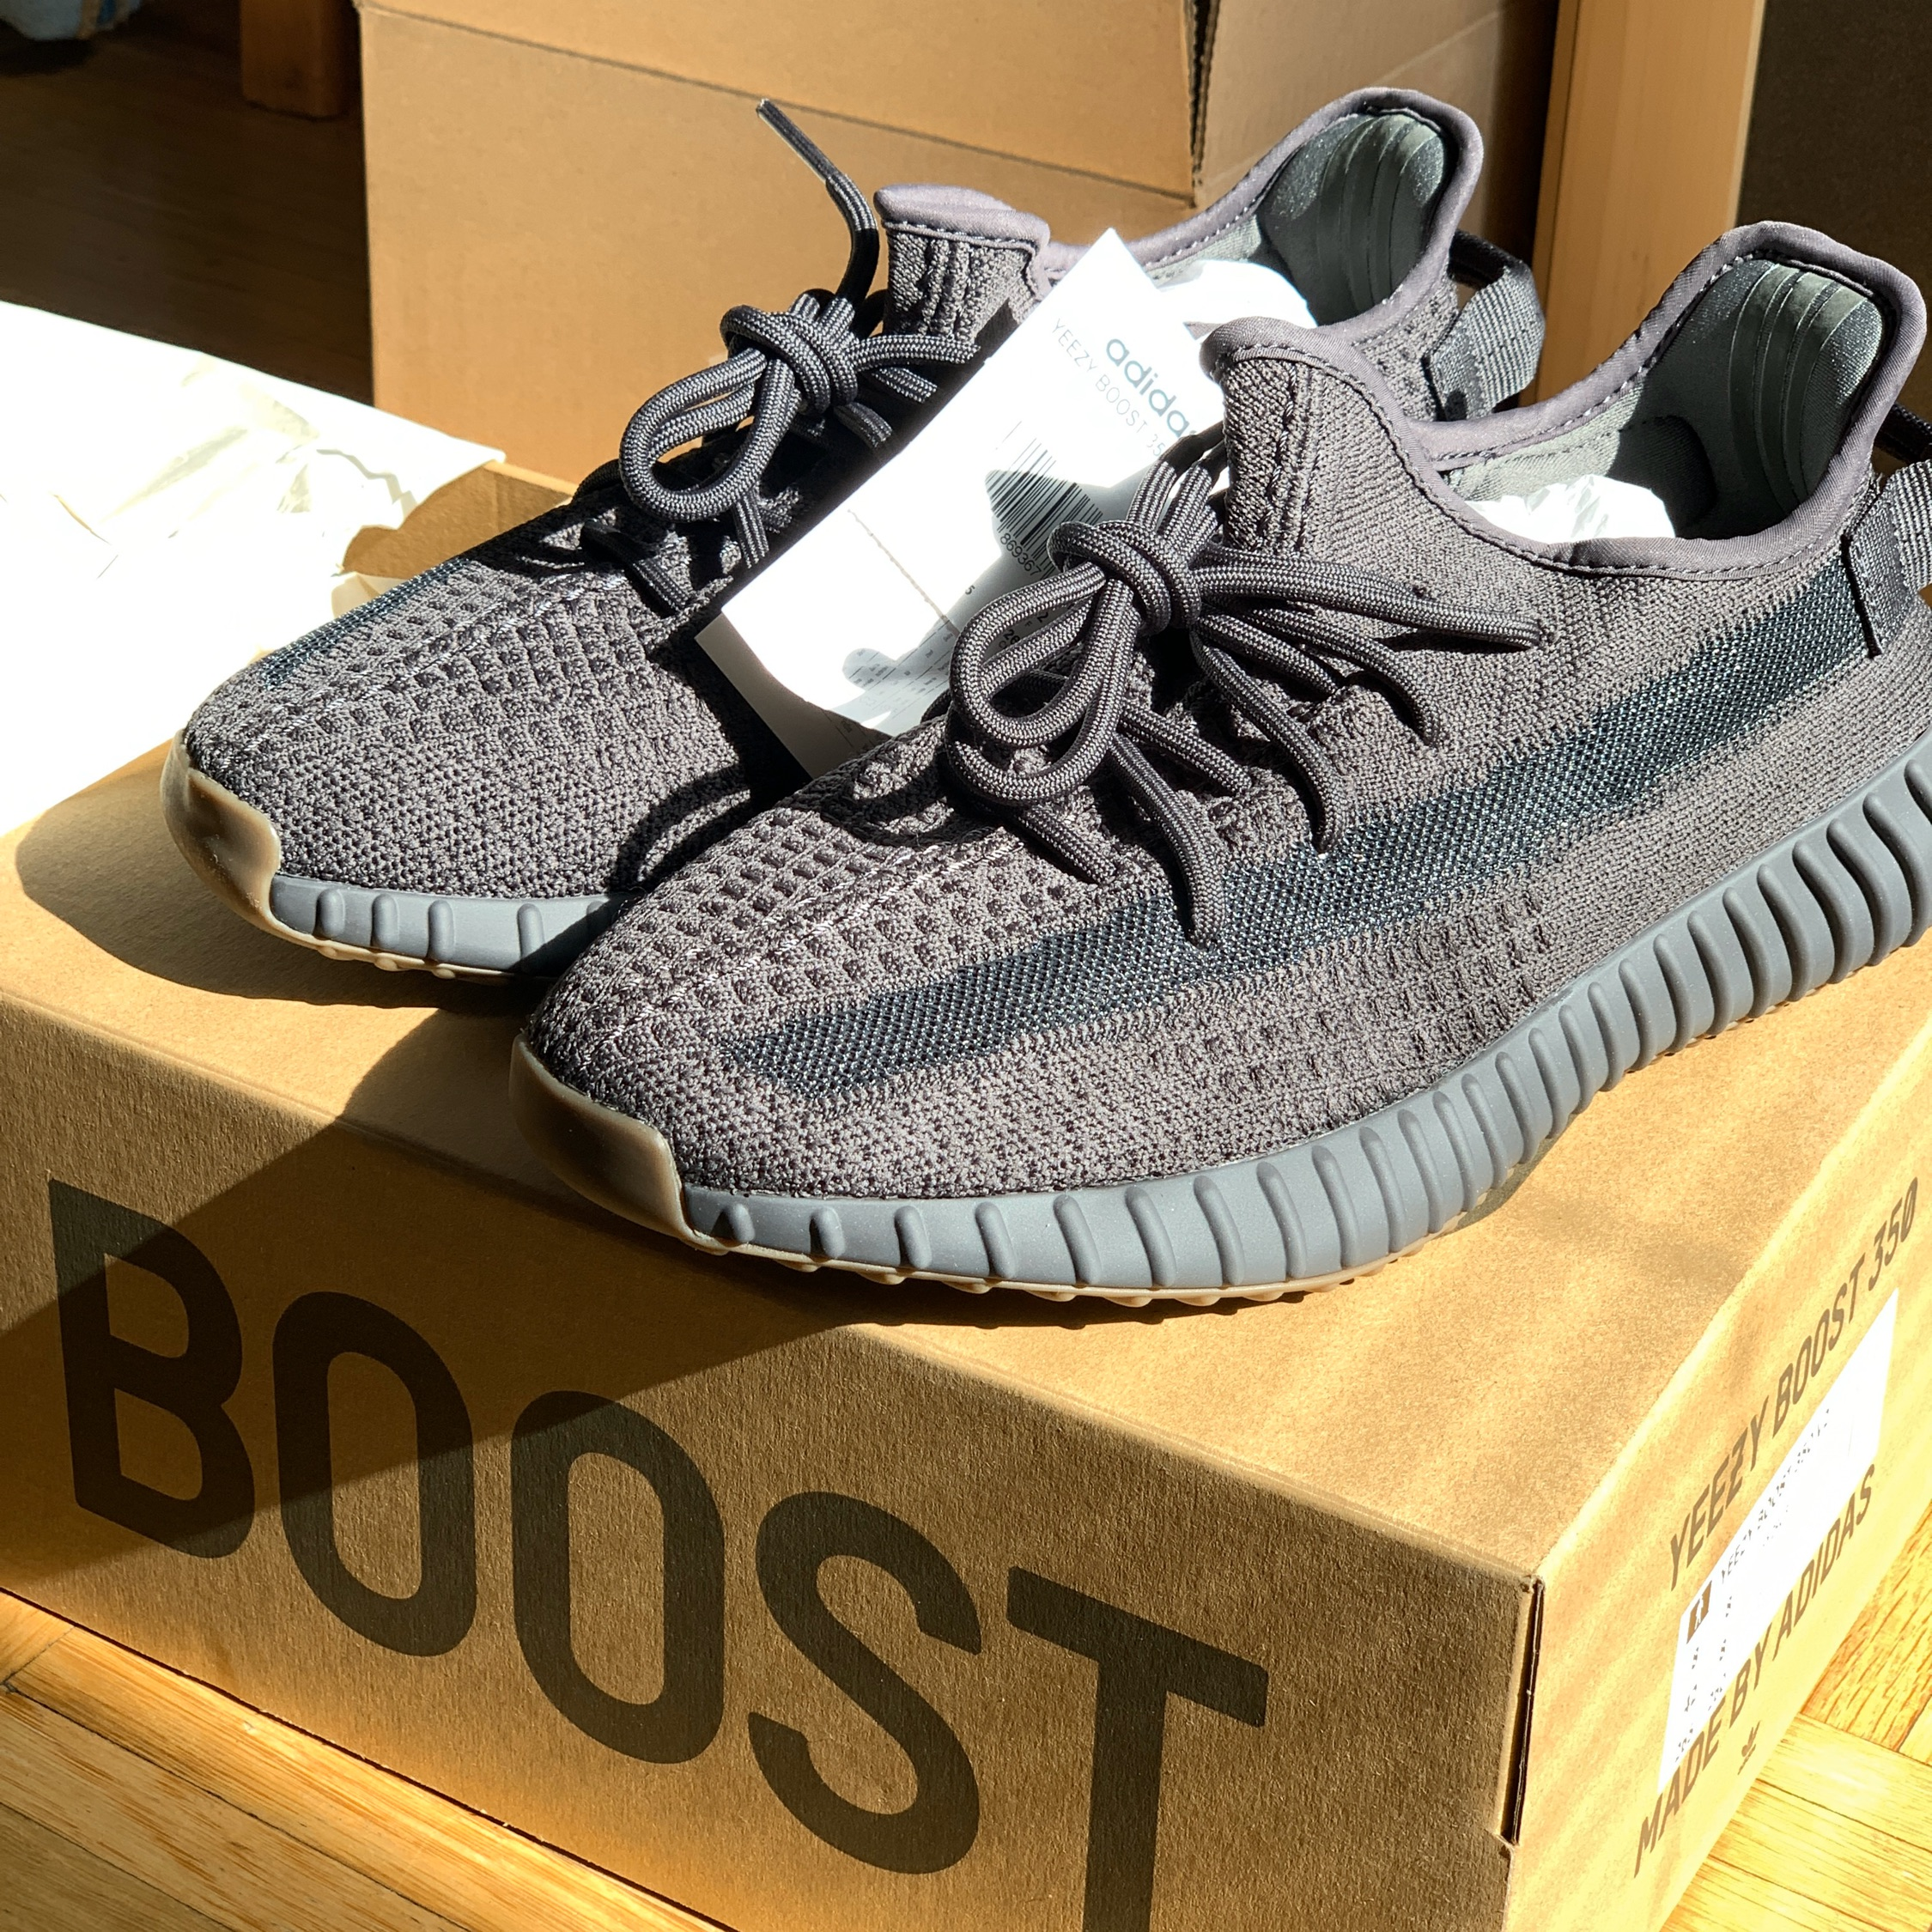 Yeezy Boost 350 V2 Cinder Resell